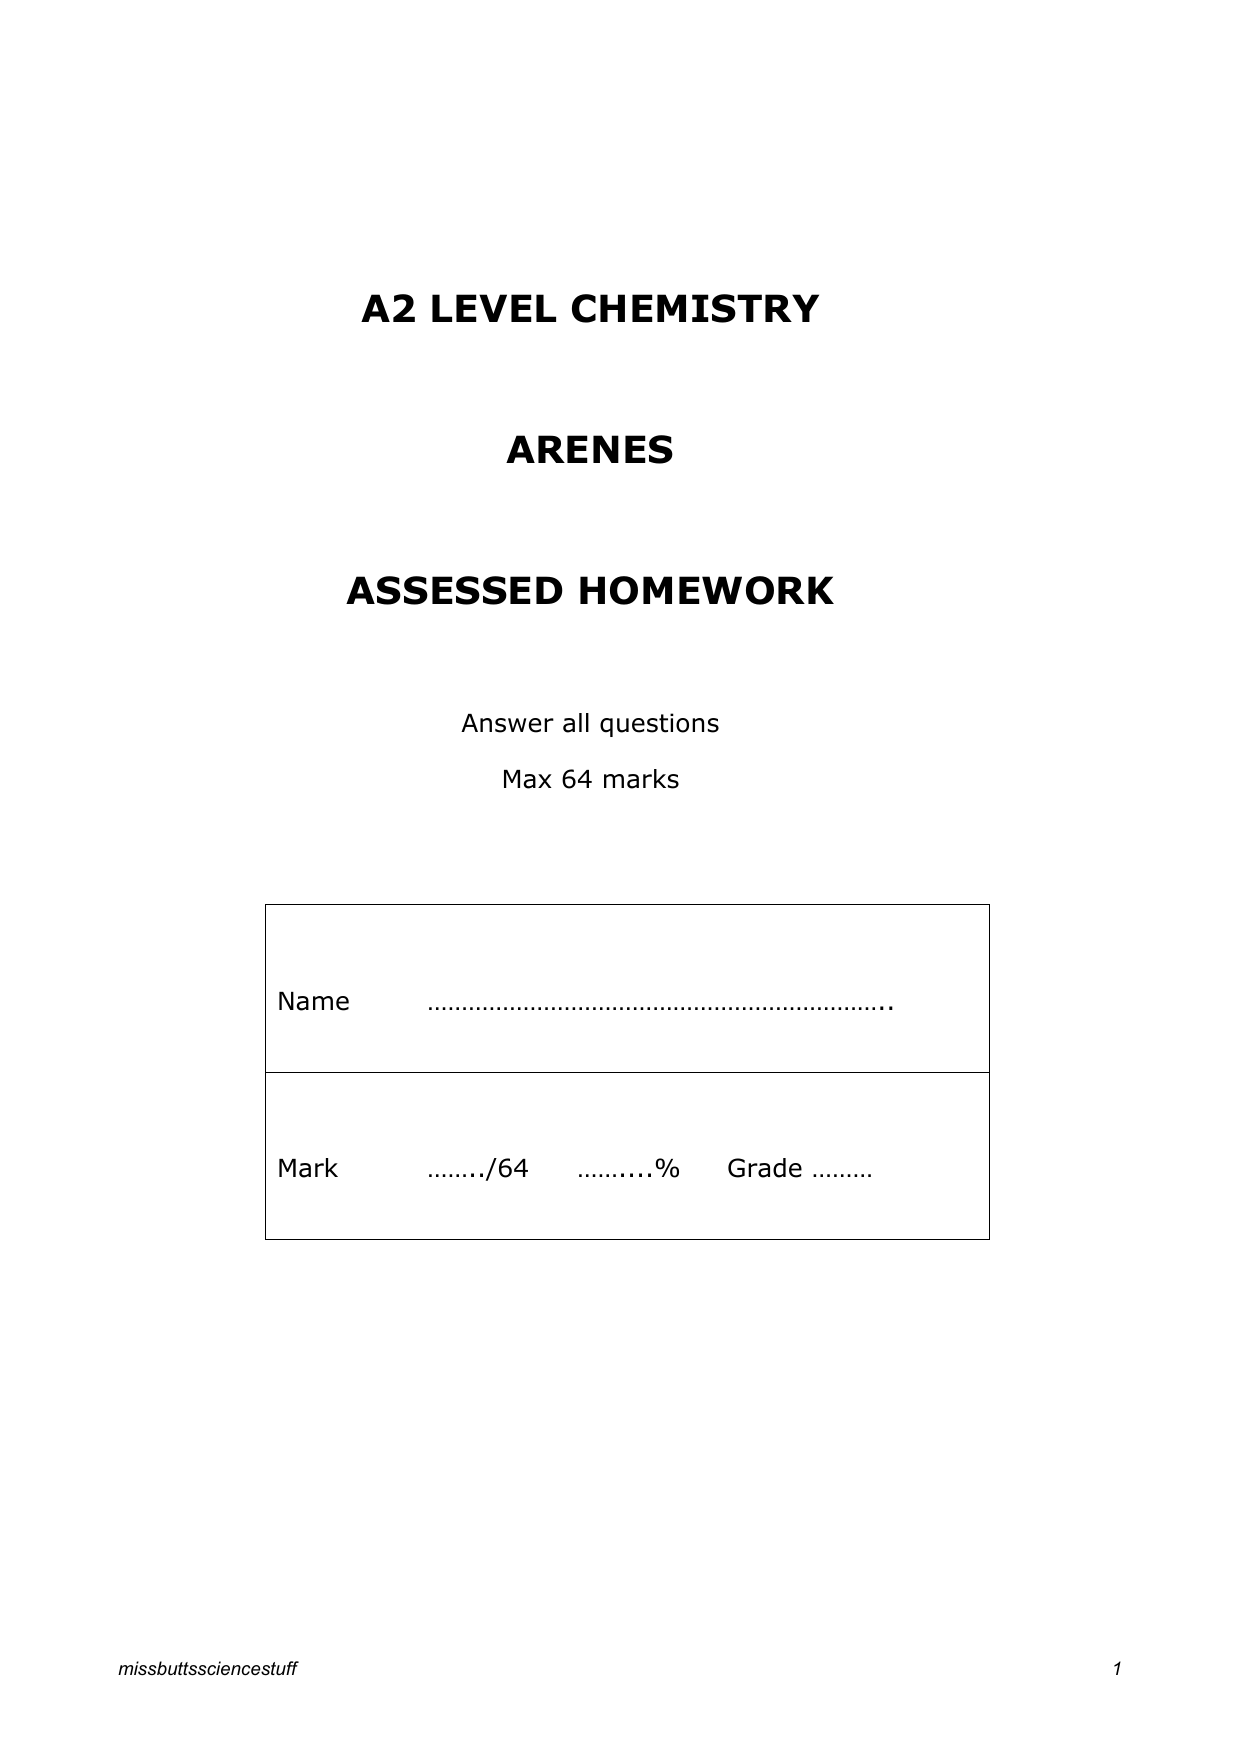 a2 level chemistry 4.1.1 arenes assessed homework answers